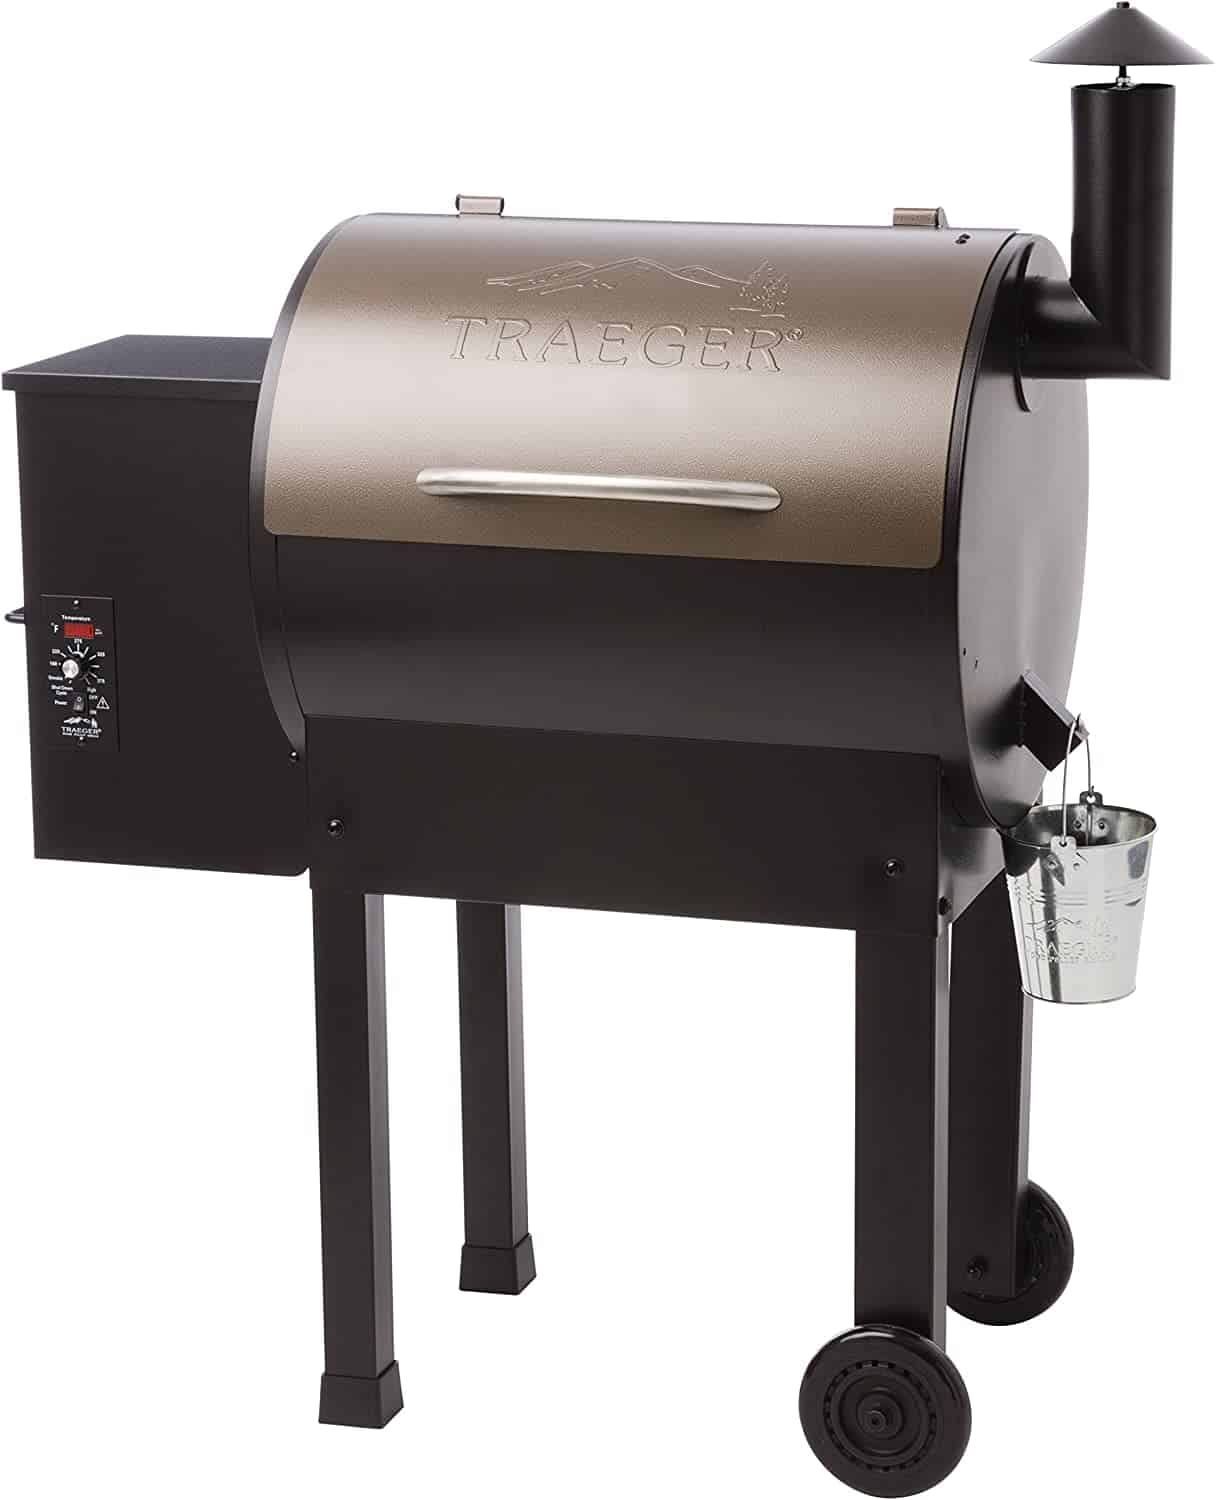 Best for smoking: Traeger Grills Lil Tex Elite Wood Pellet Grill and Smoker